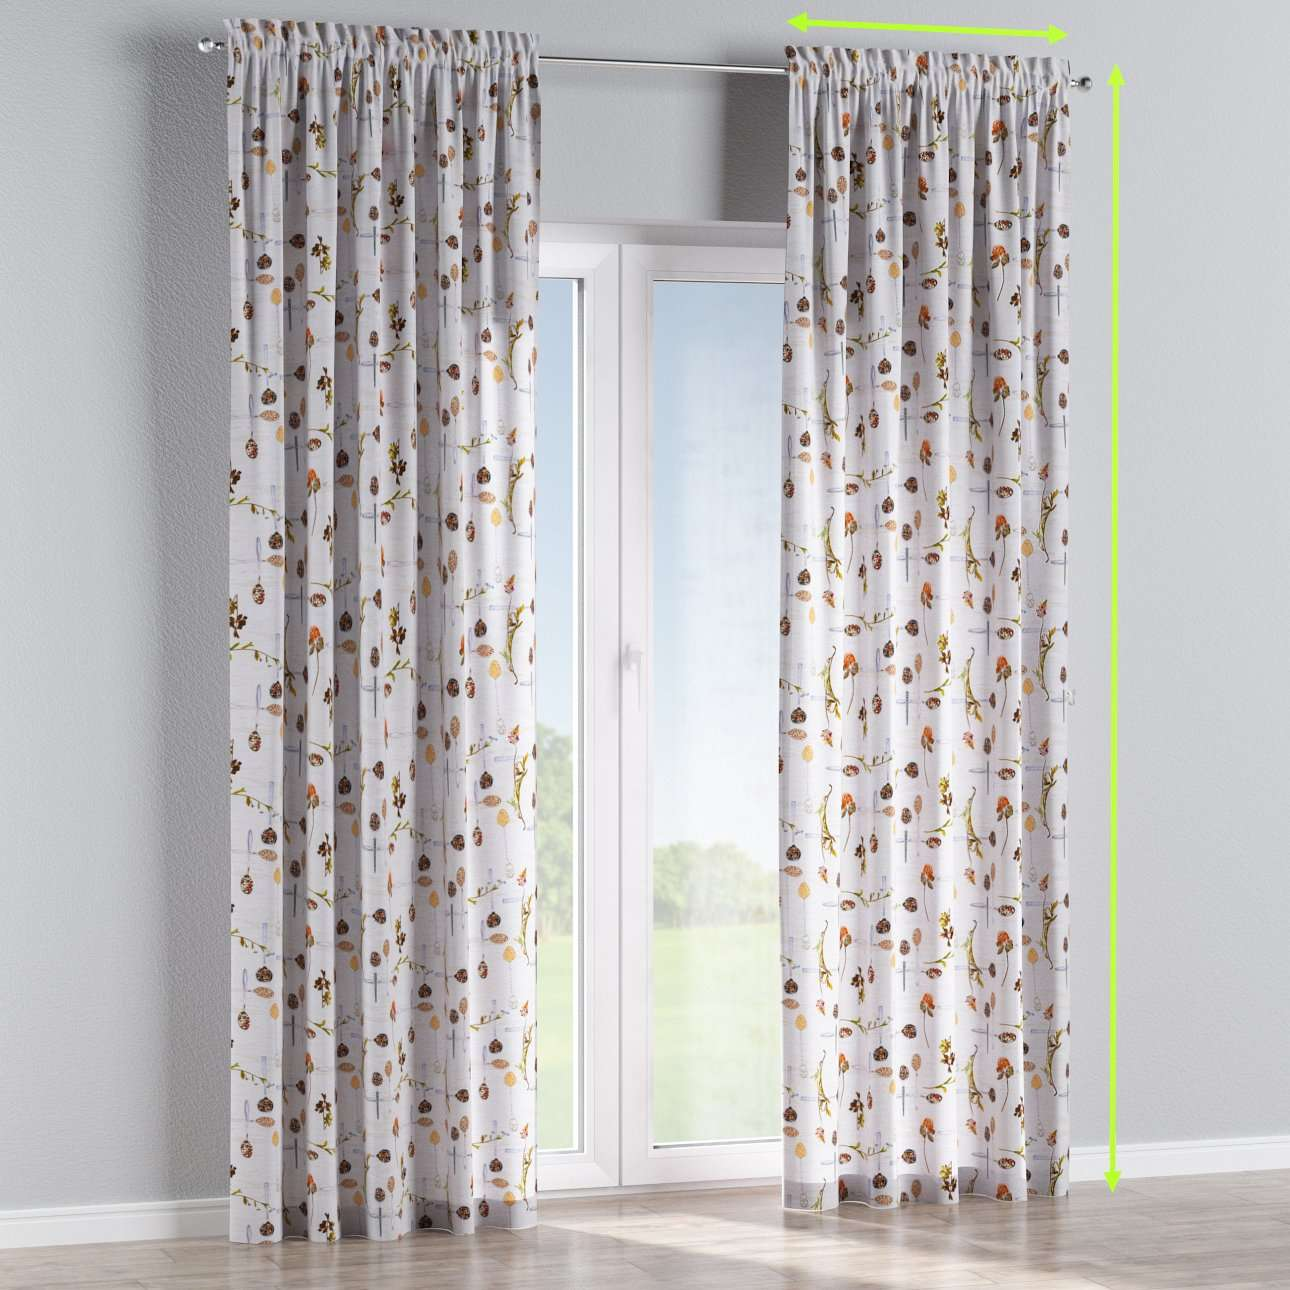 Slot and frill curtains in collection Flowers, fabric: 140-11